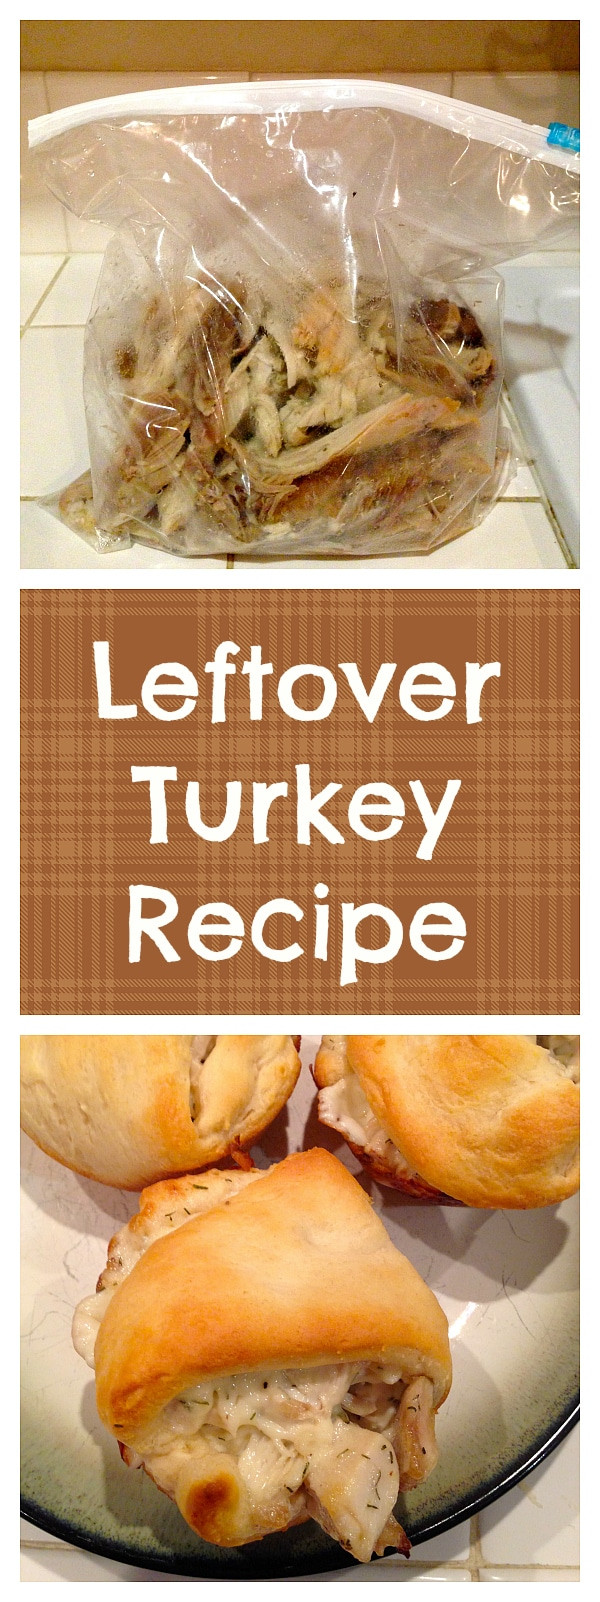 Leftover Thanksgiving Turkey Recipes  Best Leftover Turkey Recipe · The Typical Mom